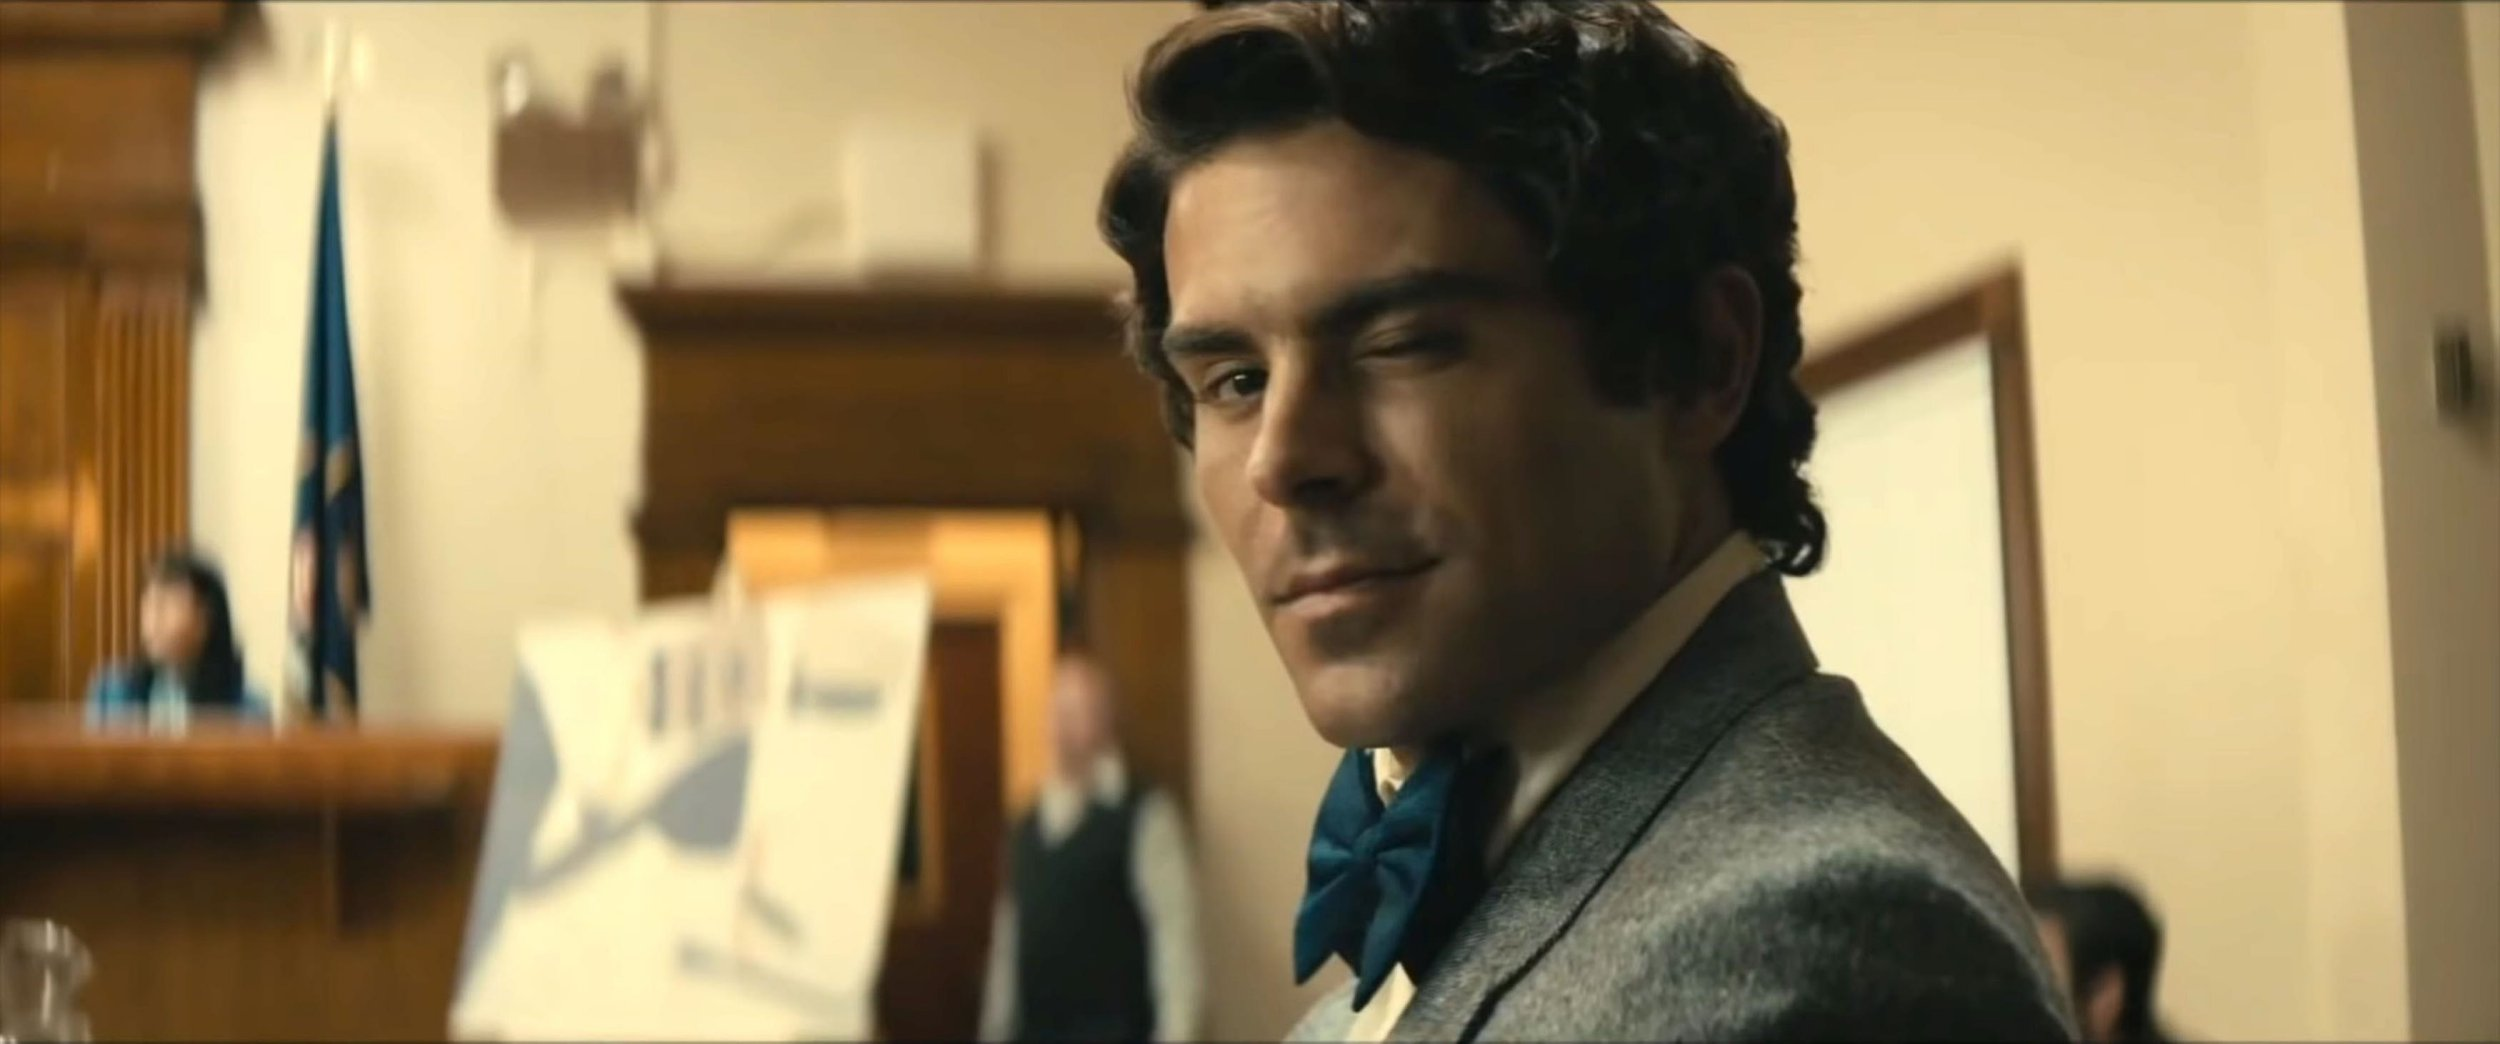 Zac Efron explains why Ted Bundy role 'intrigued' him and defends playing up 'charisma' of the serial killer